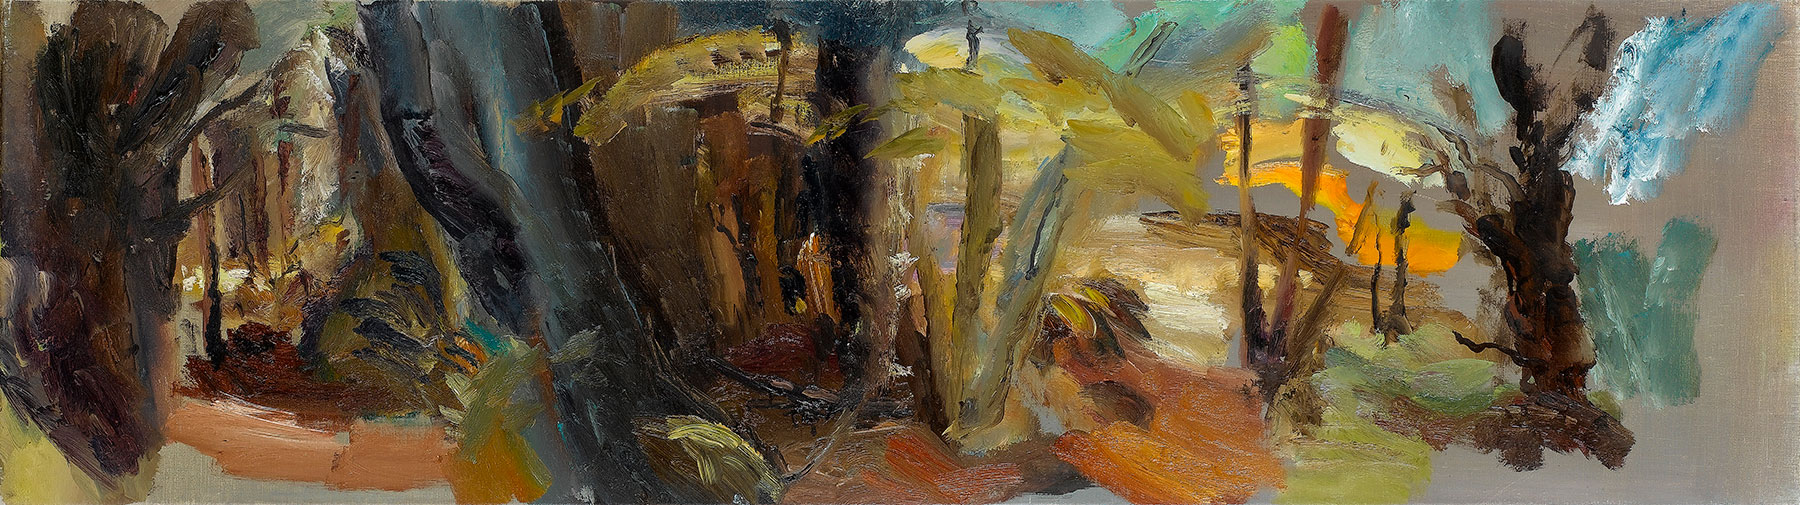 Farwood Summer Pathways, 1984, 50.5 x 183 cm, oil on canvas